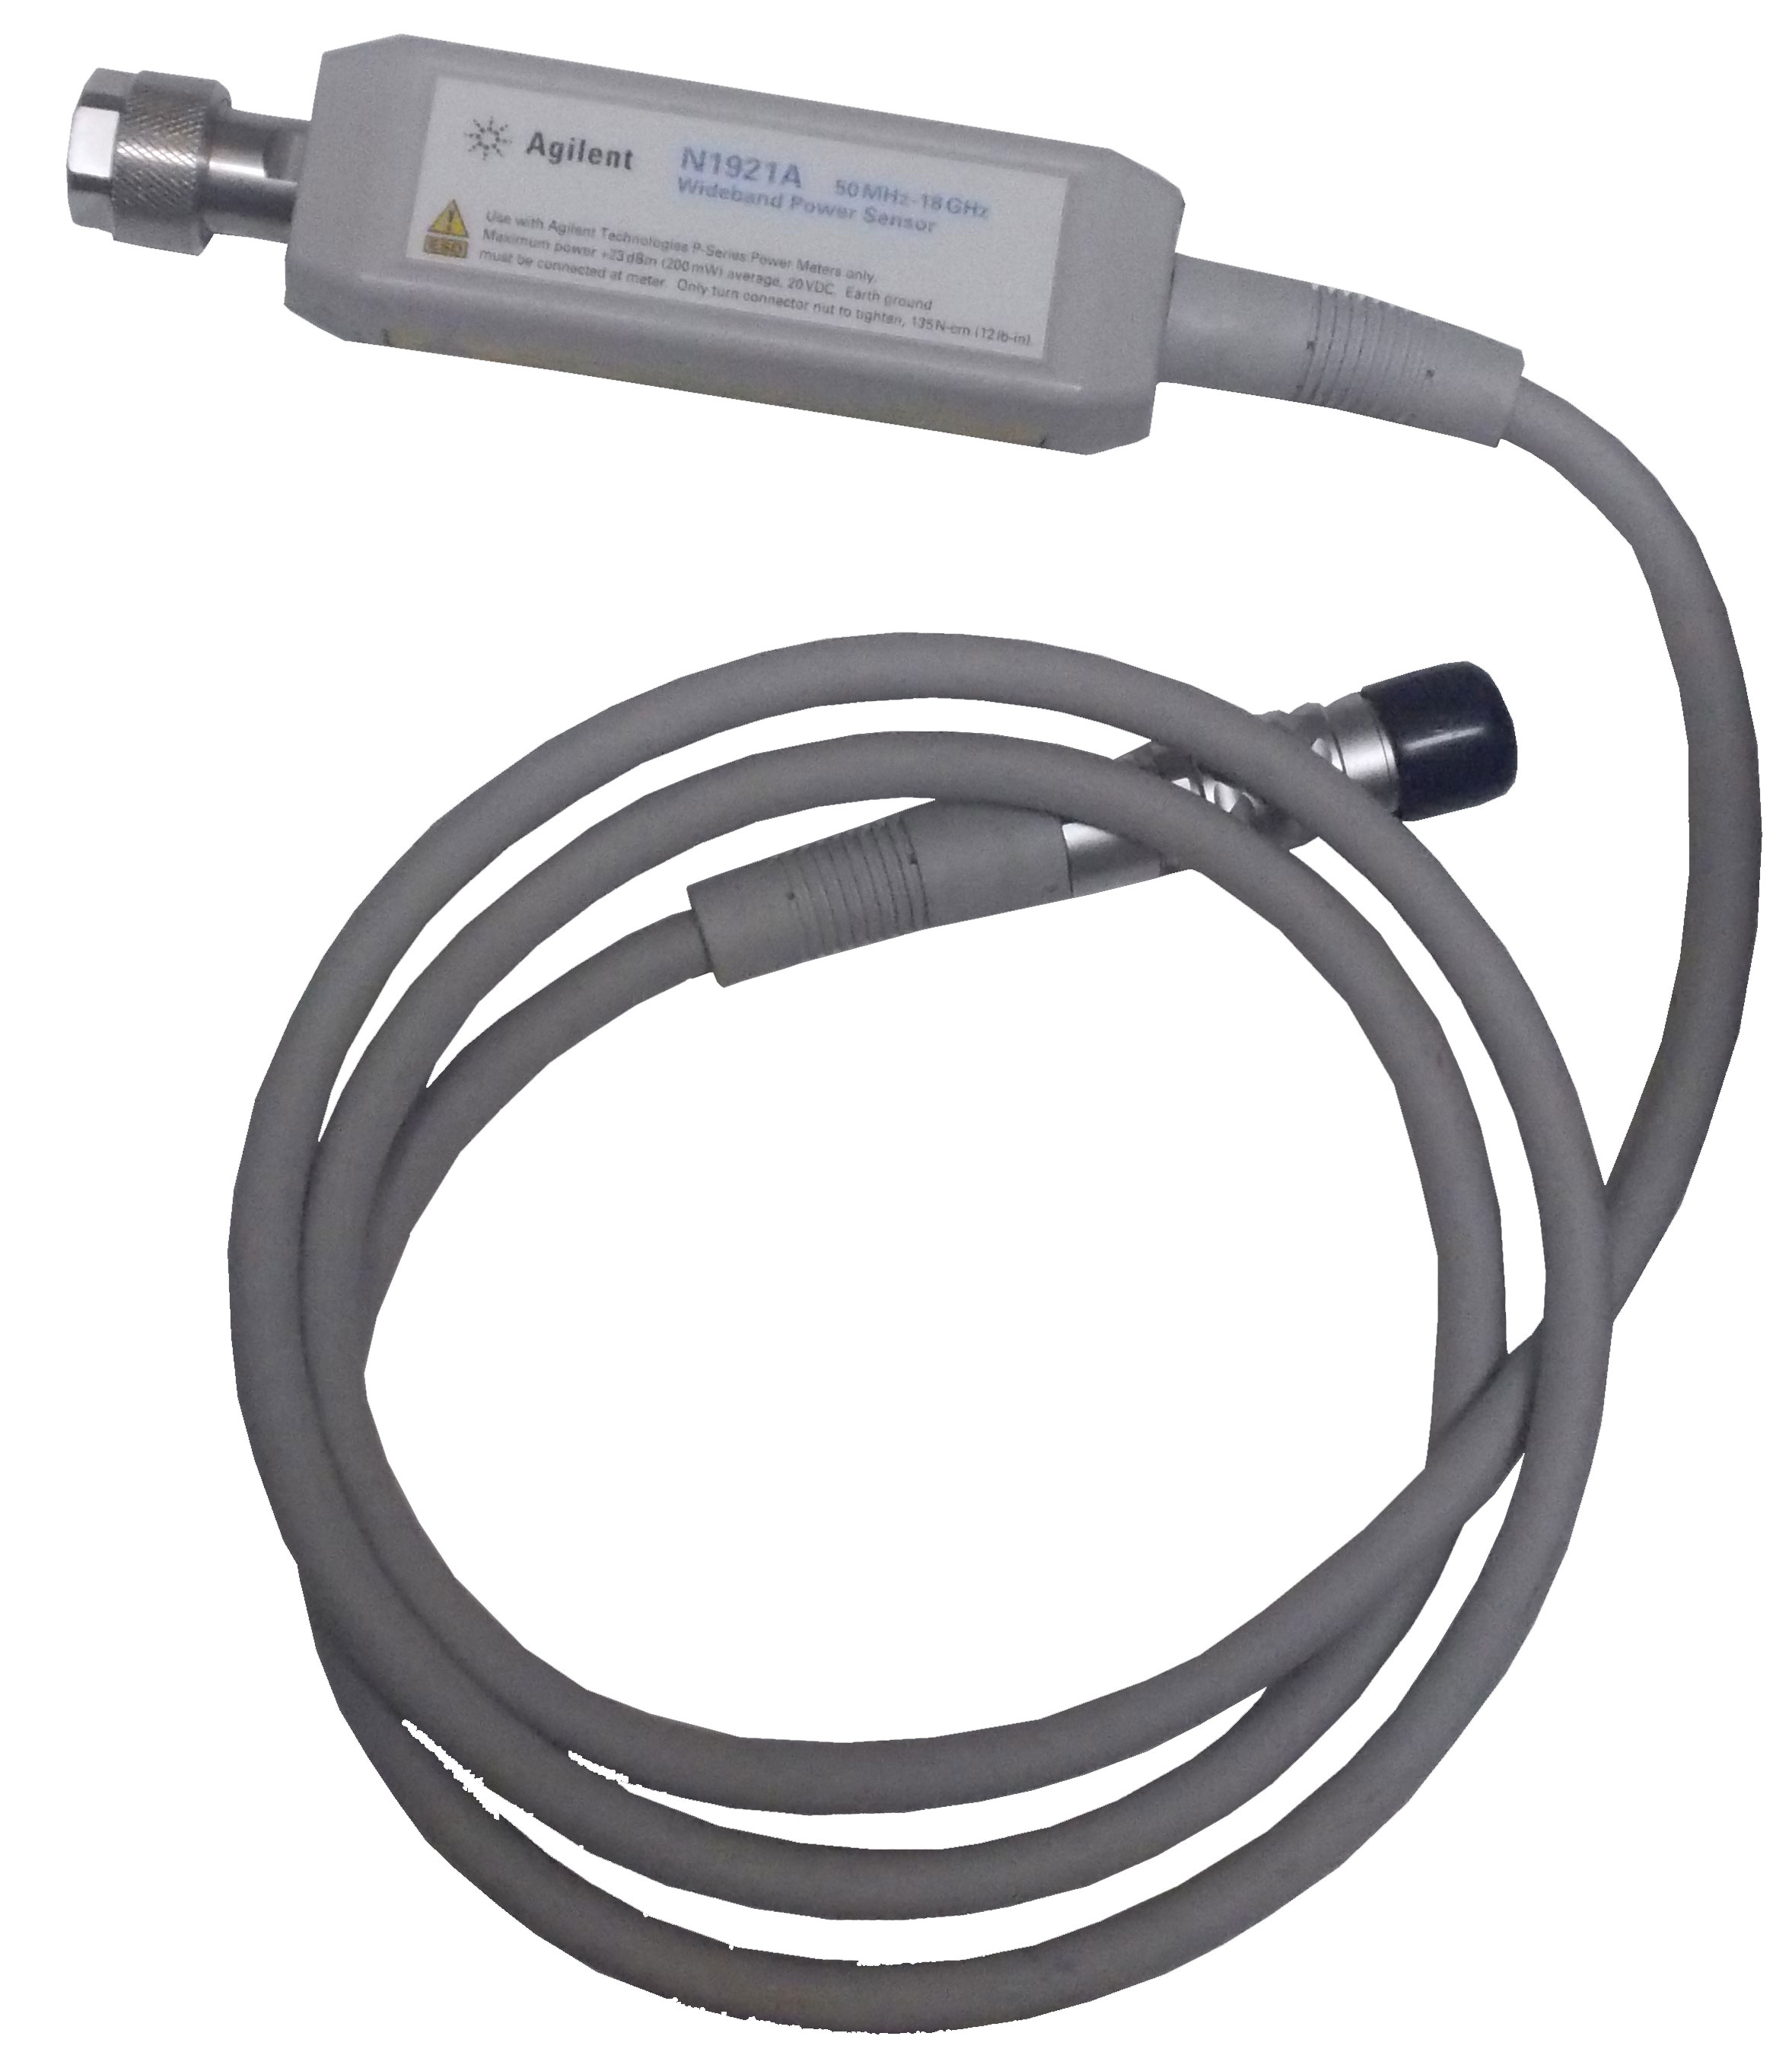 Keysight N1921A P-Series Wideband Power Sensor, 50 MHz - 18 GHz